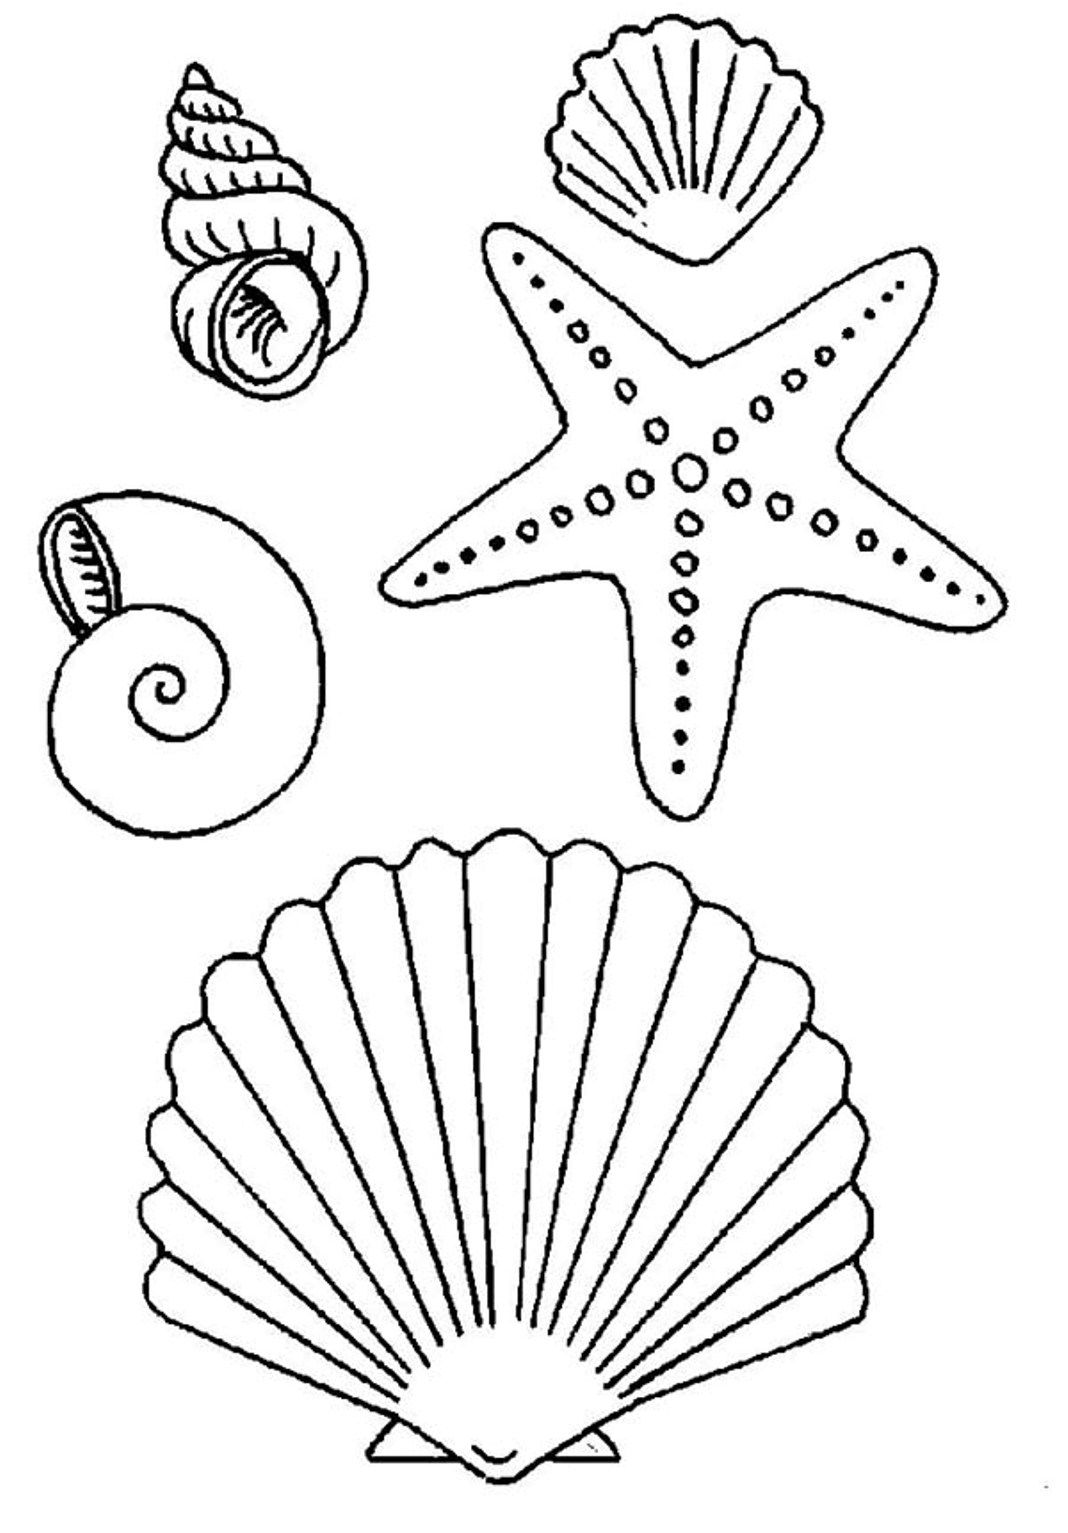 Free Printable Starfish Coloring Pages